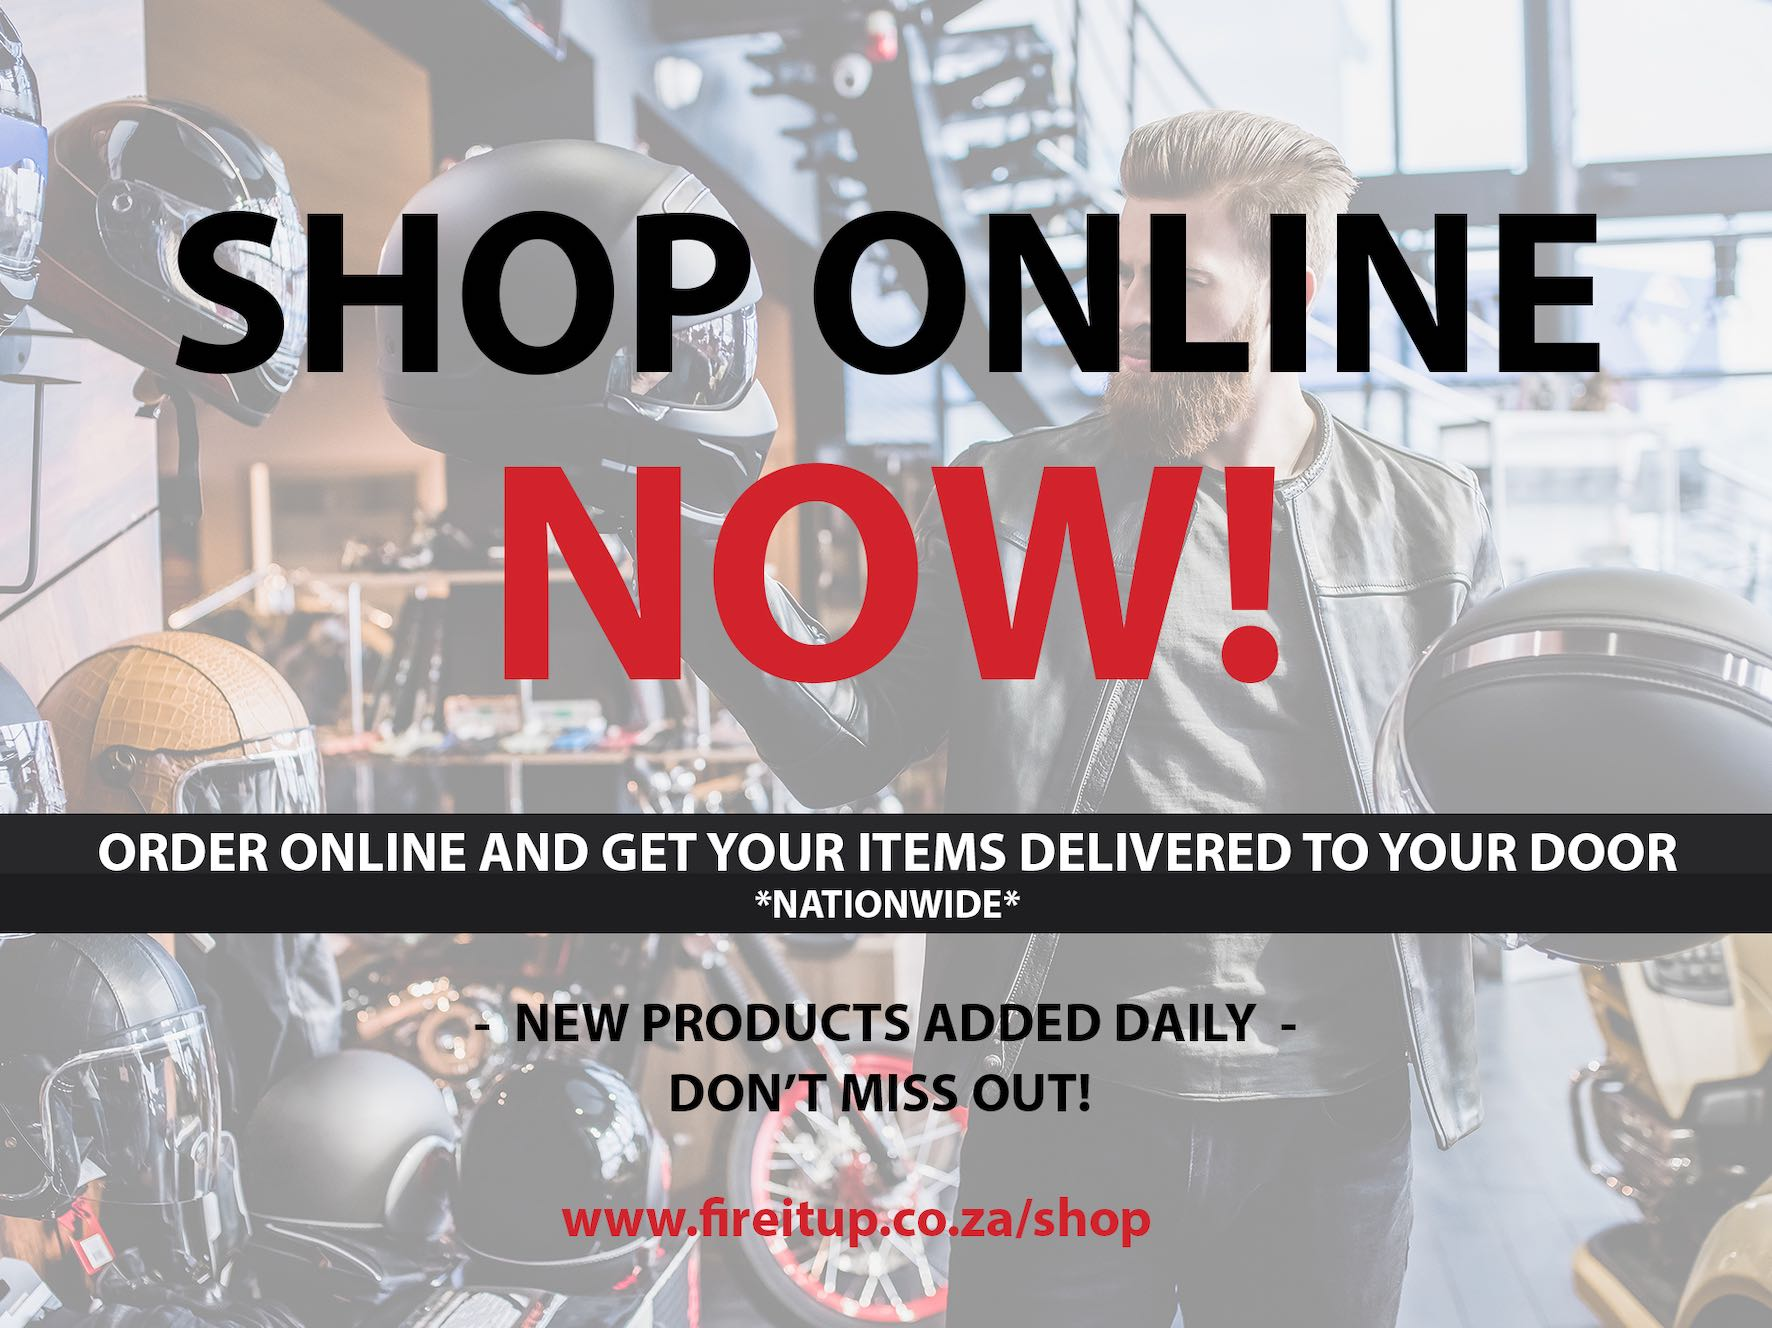 Fire It Up motorcycles launch their online store